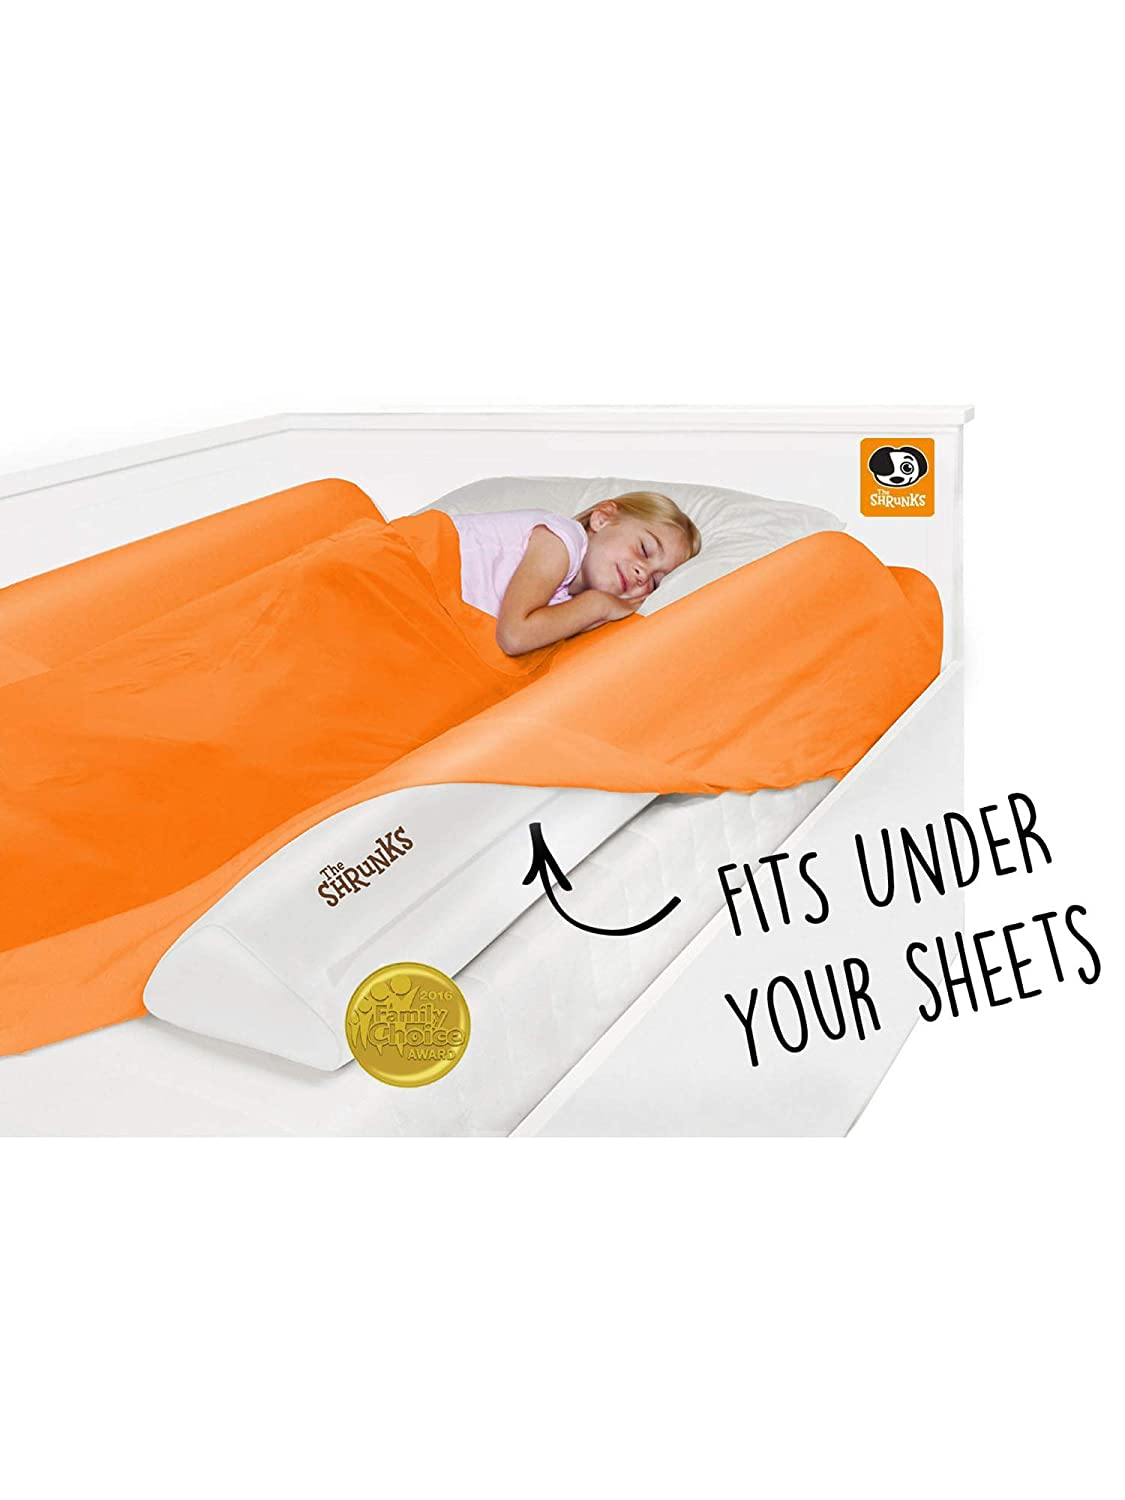 The Shrunks Carril de cama inflable